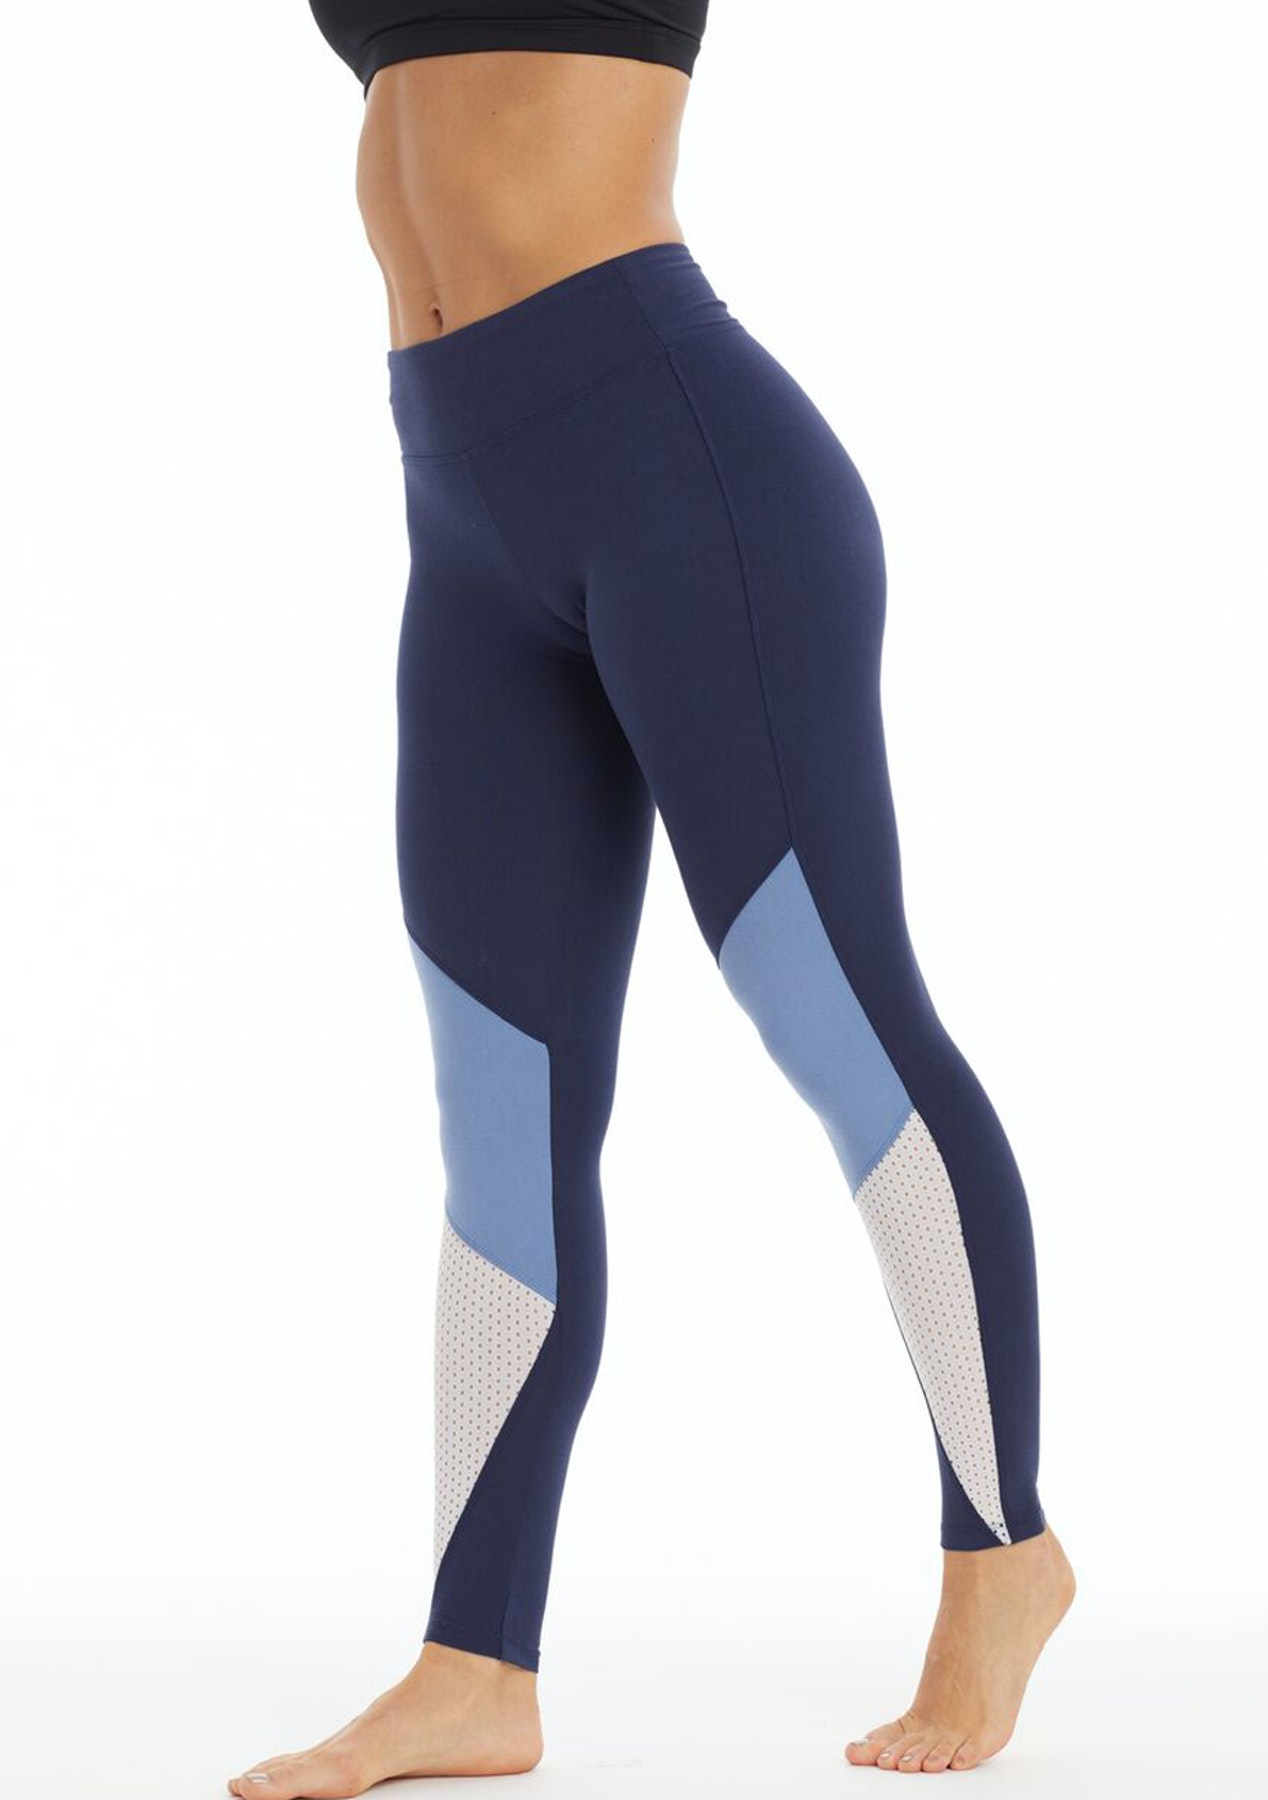 808060dba44ca Balance Collection by Marika - Malibu Legging - Peacoat/ Colony - All New  Activewear: Nothing Over $40 - Onceit